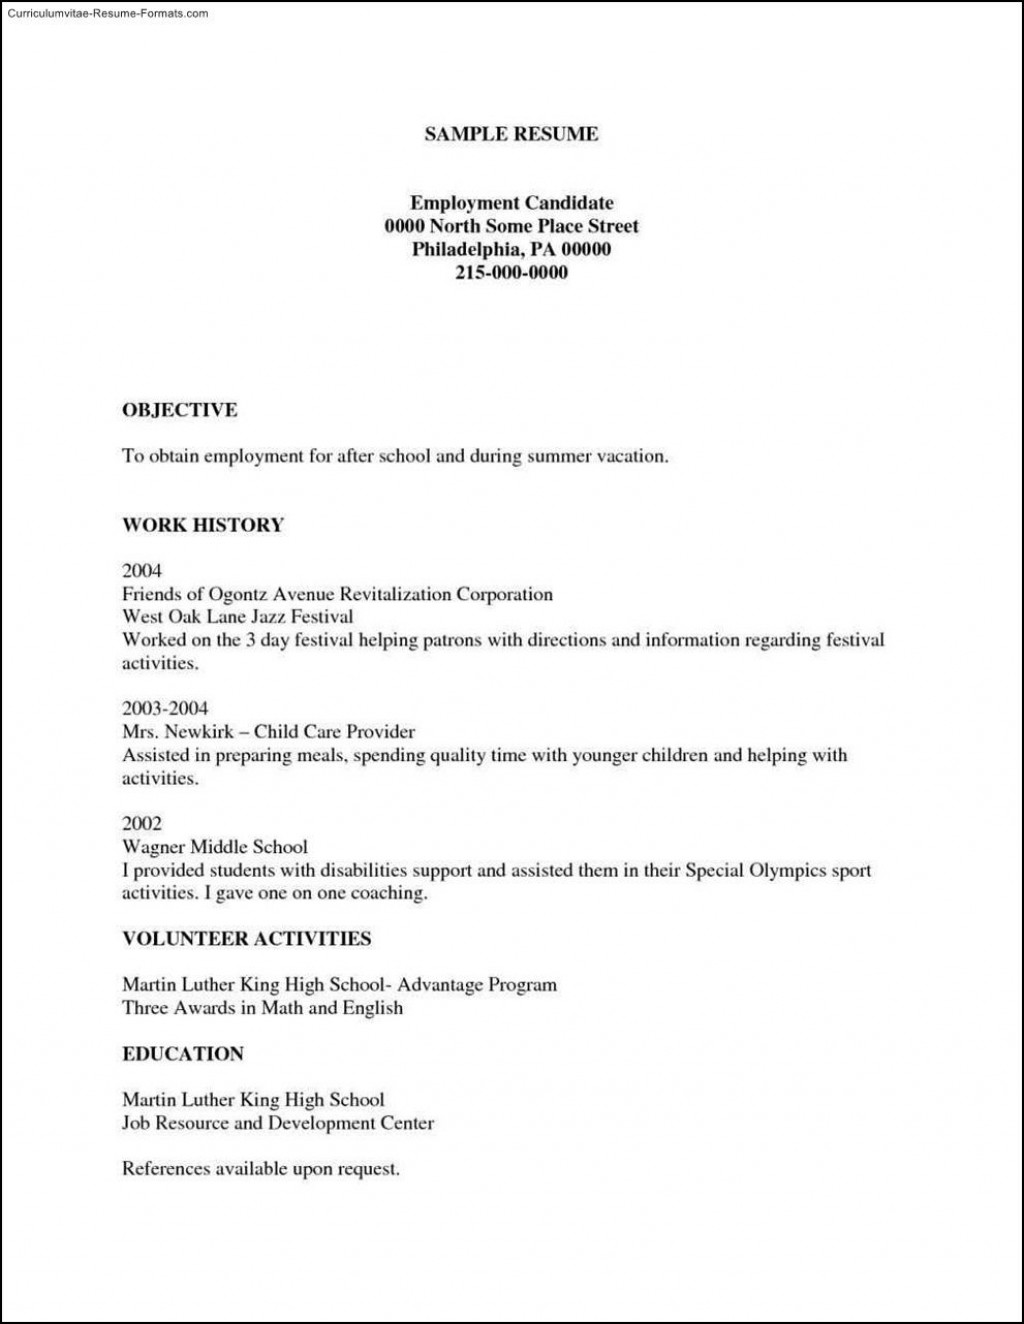 008 Astounding Free Printable Resume Template 2018 Highest Quality Large